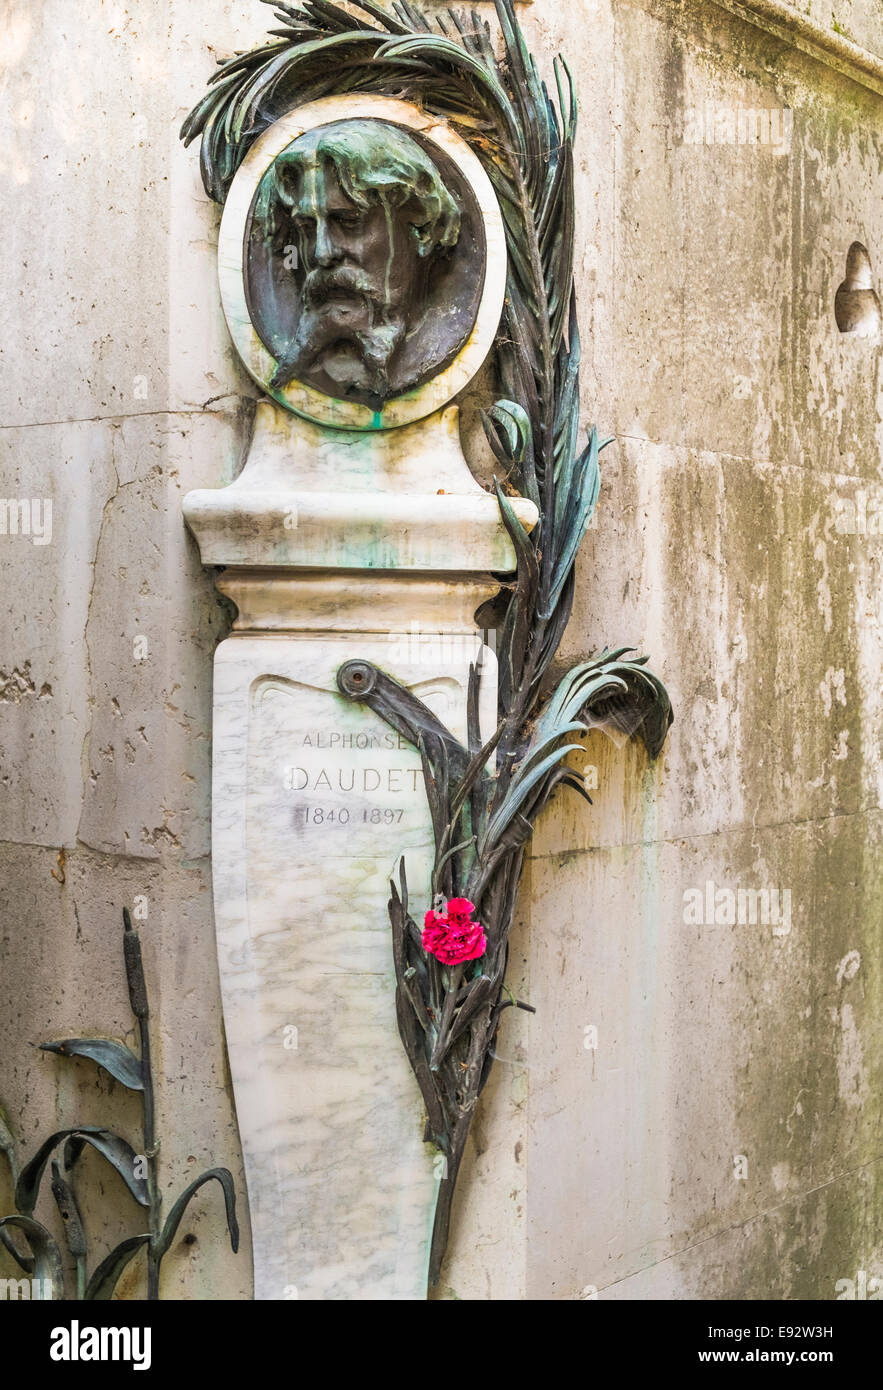 graveside of french writer alphonse daudet, pere lachaise cemetery, paris Stock Photo